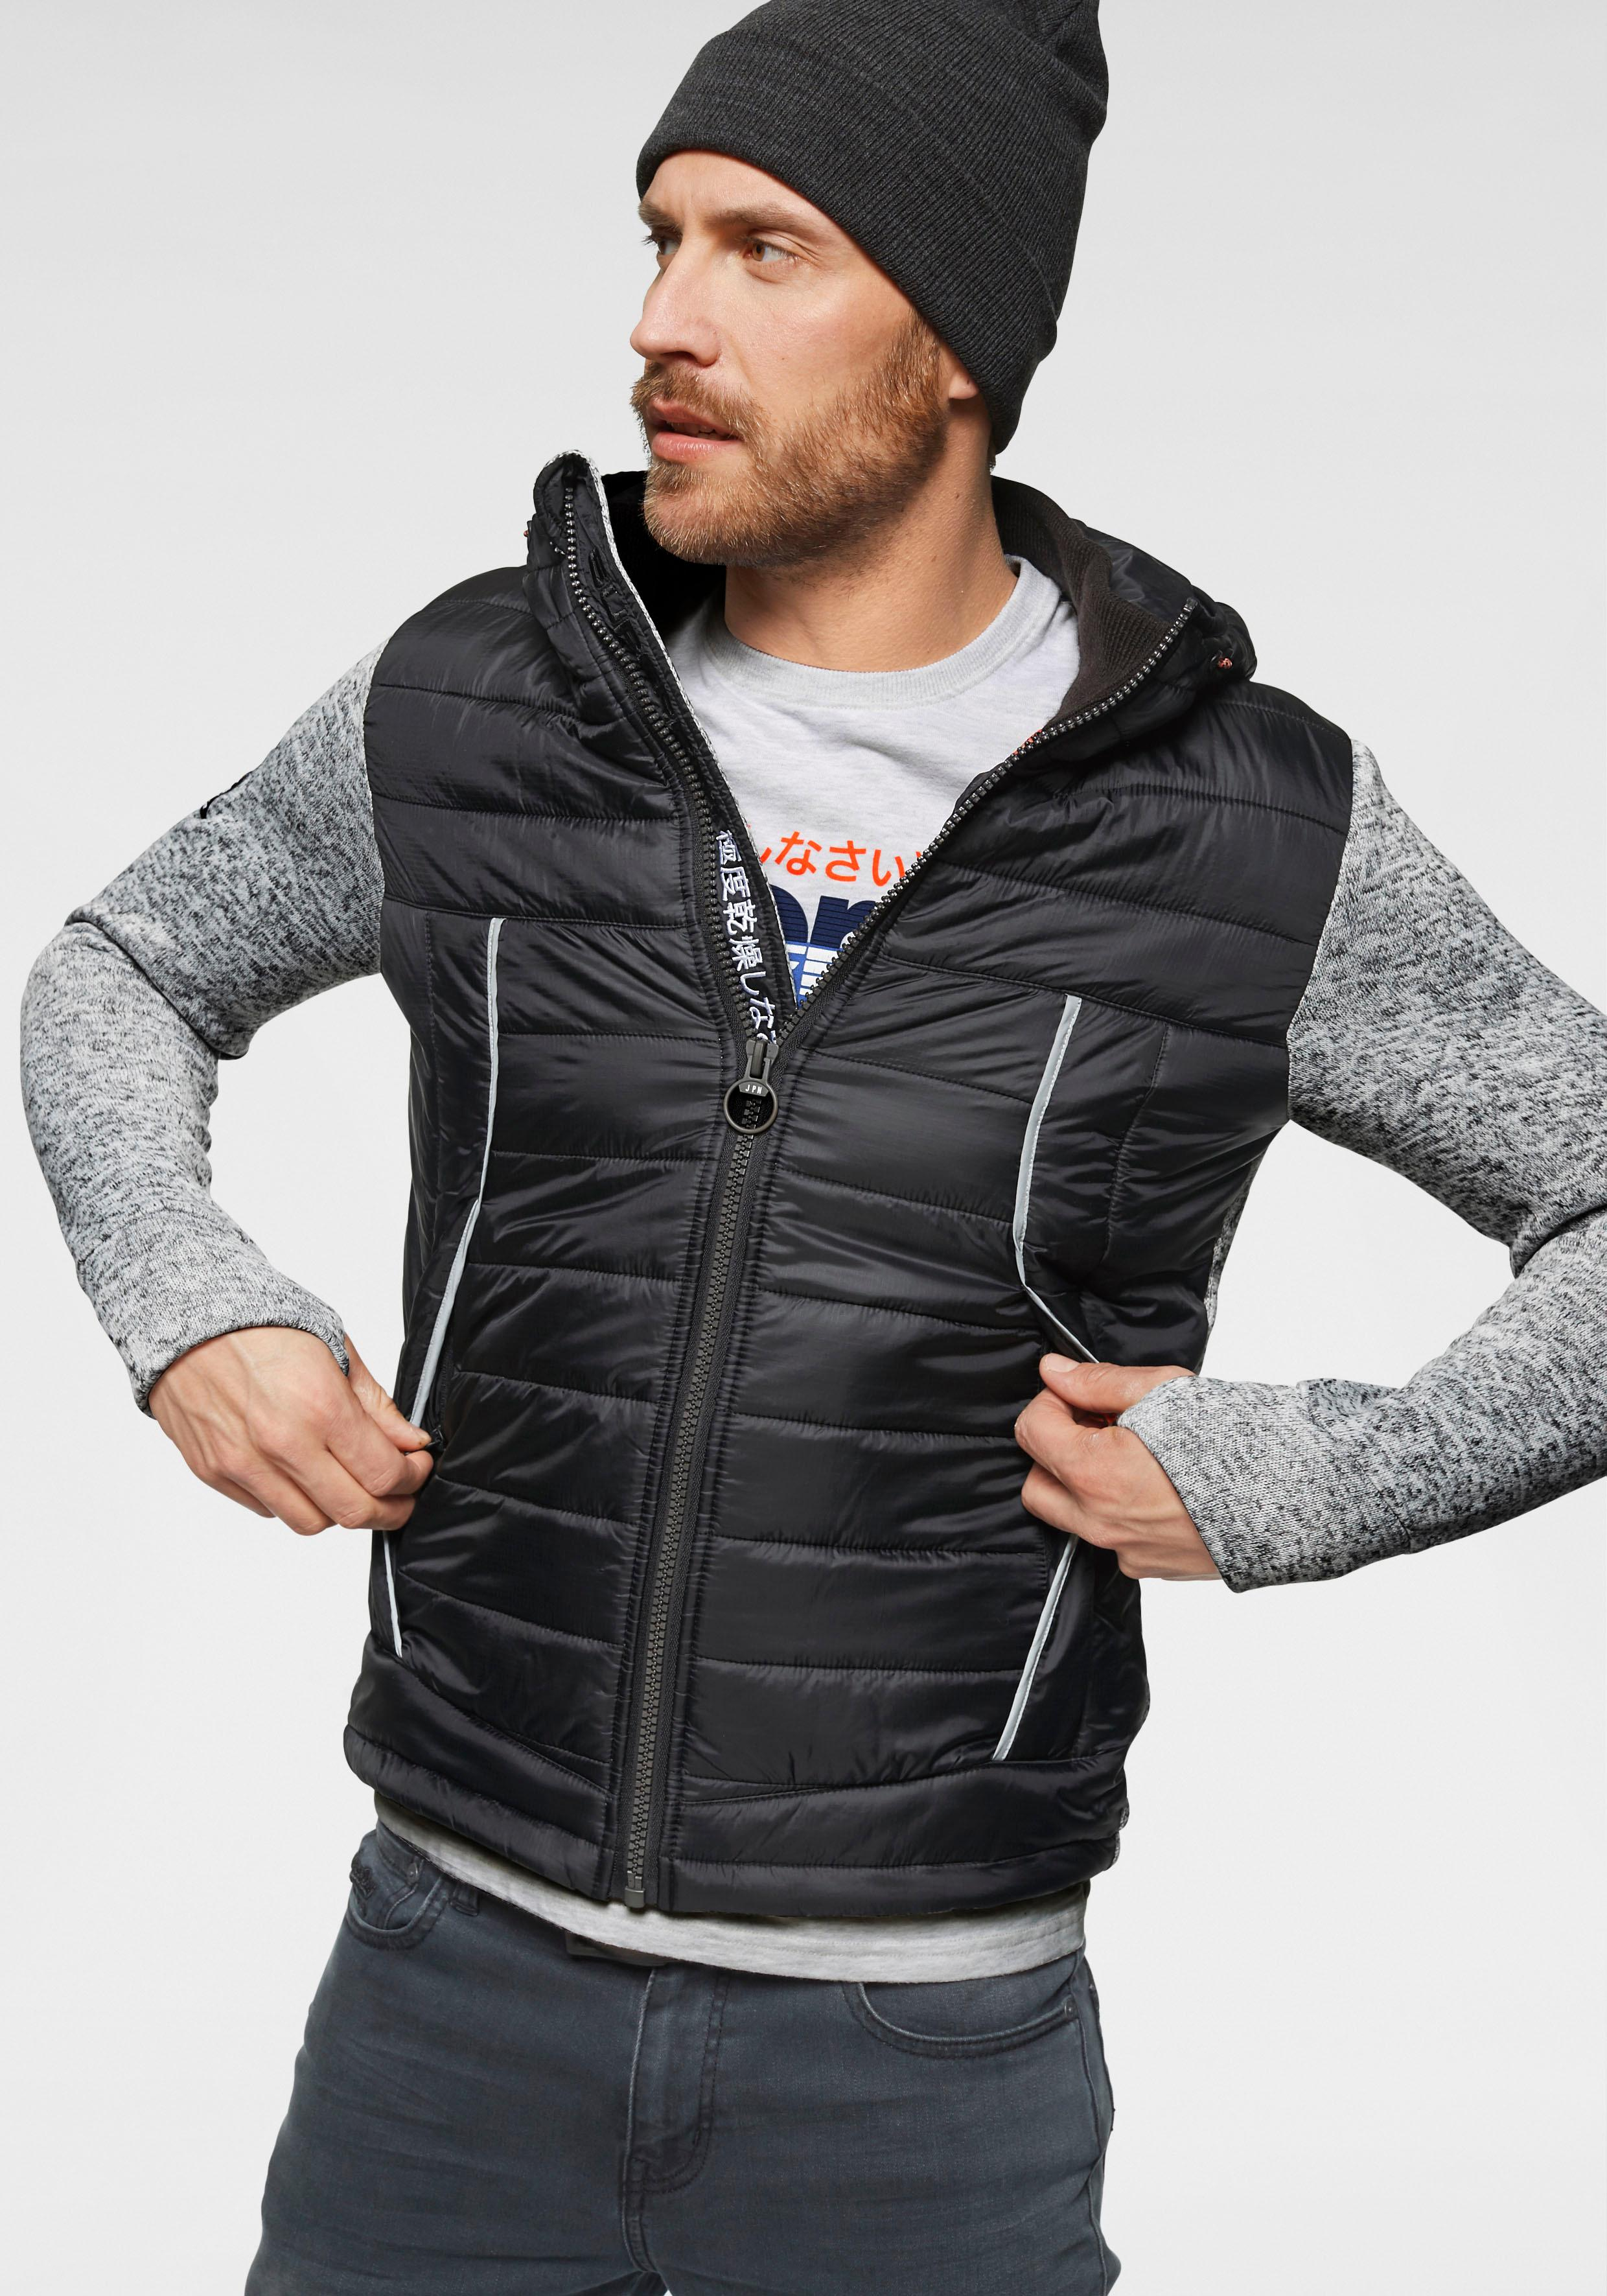 outlet store sale f4b80 d2ece Superdry Steppjacke » BAUR